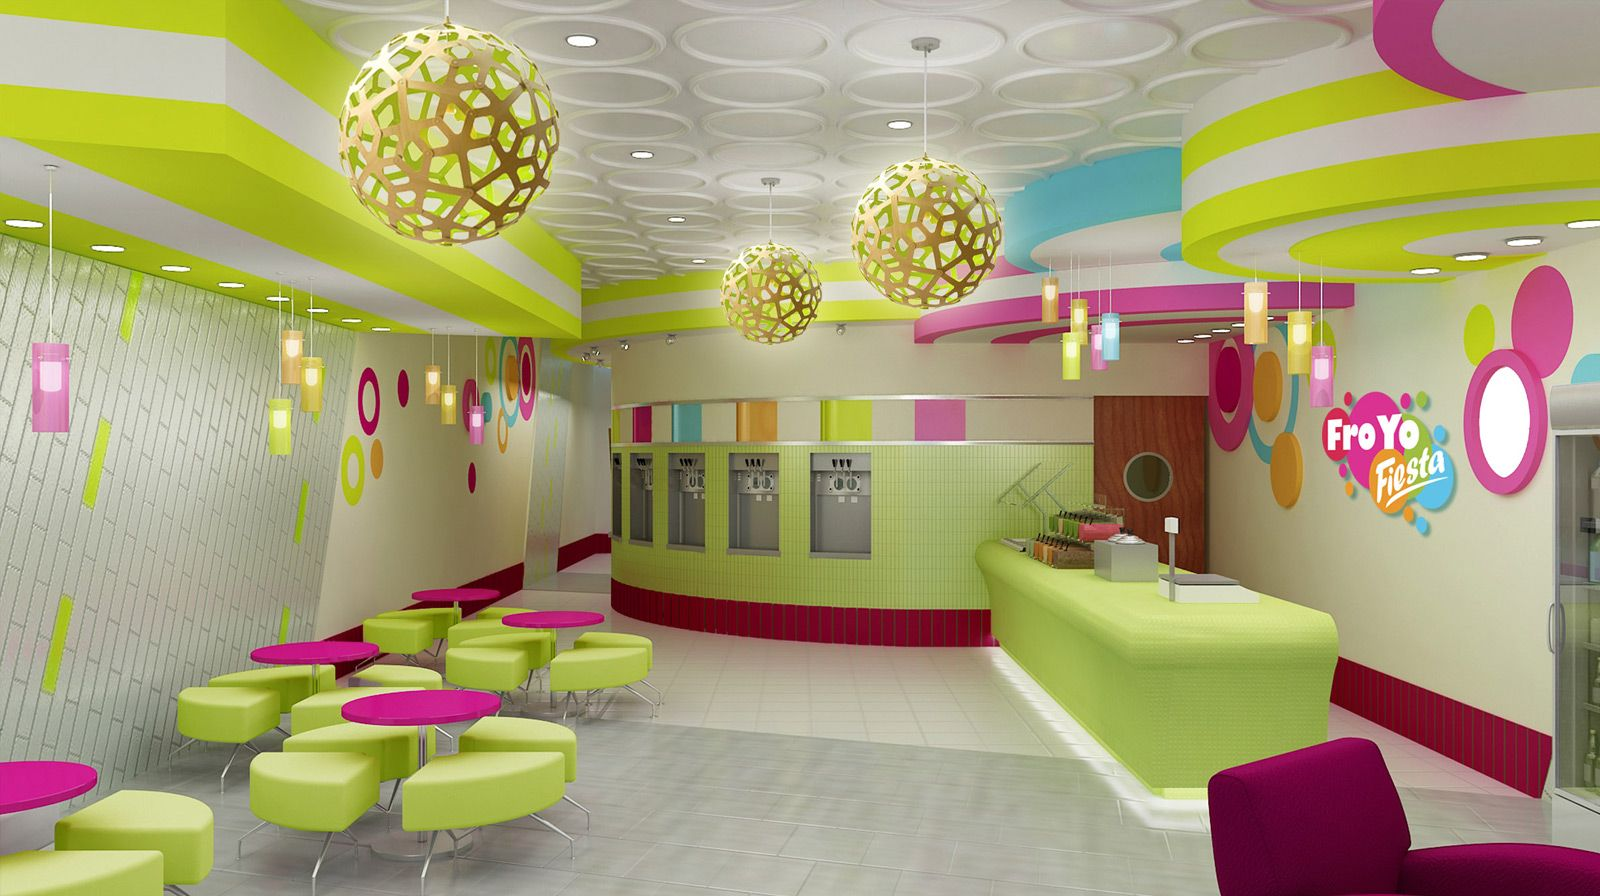 Froyo fiesta yogurt shop interior design ice cream shop for Design shop de